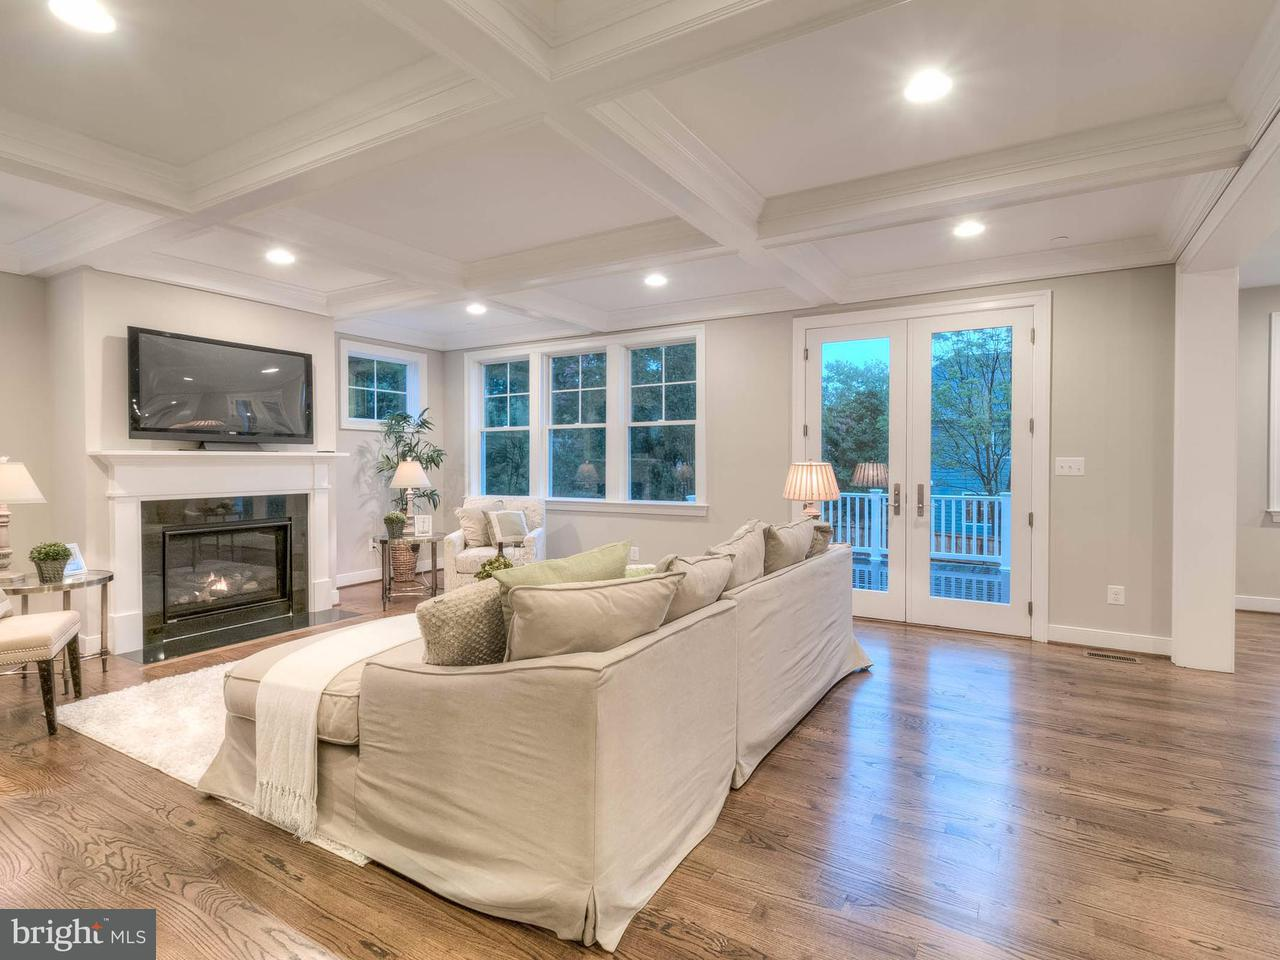 Single Family Home for Sale at 9505 Edgeley Road 9505 Edgeley Road Bethesda, Maryland 20814 United States